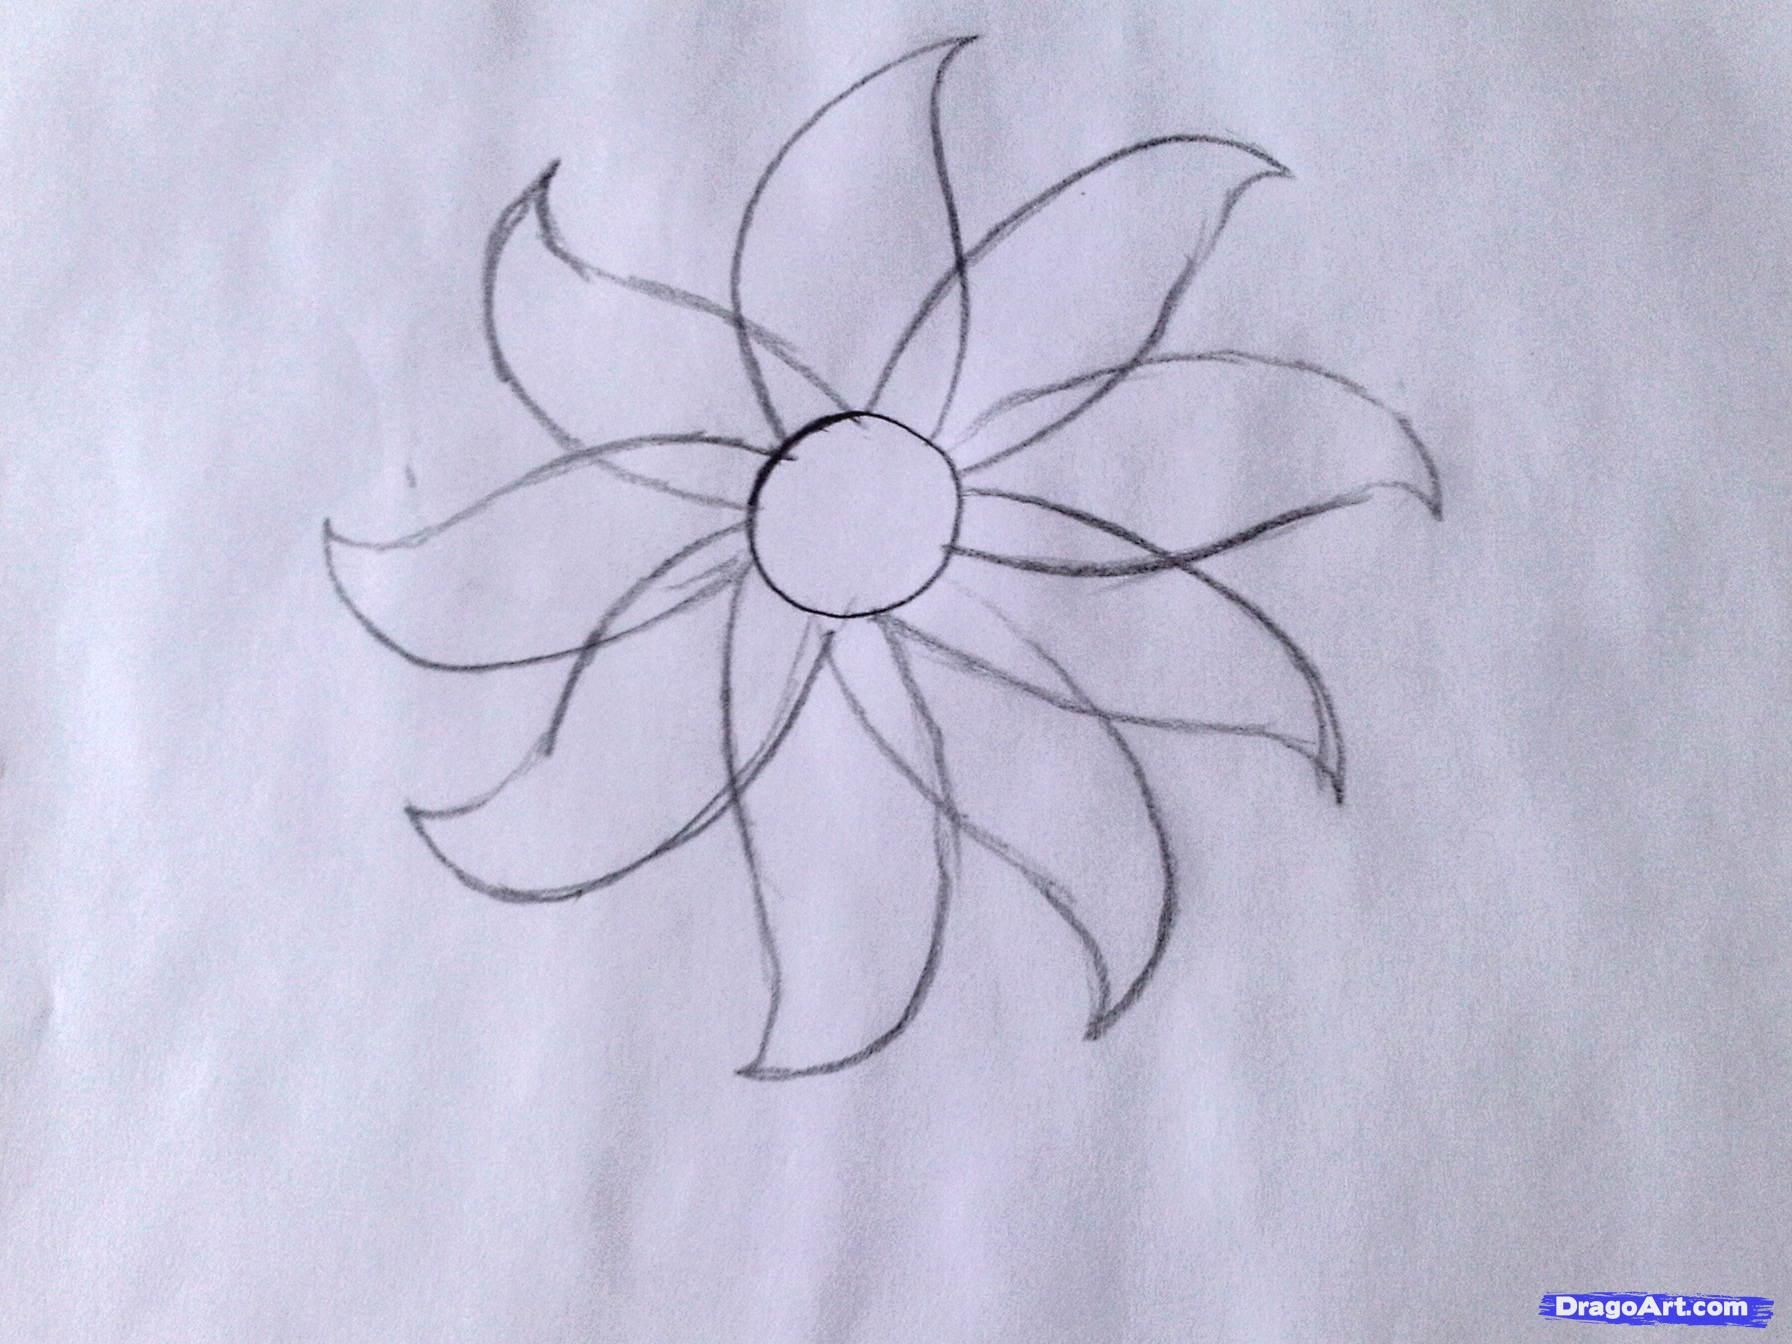 How To Draw A Flower  Easy, Step By Step, Flowers For Kids,